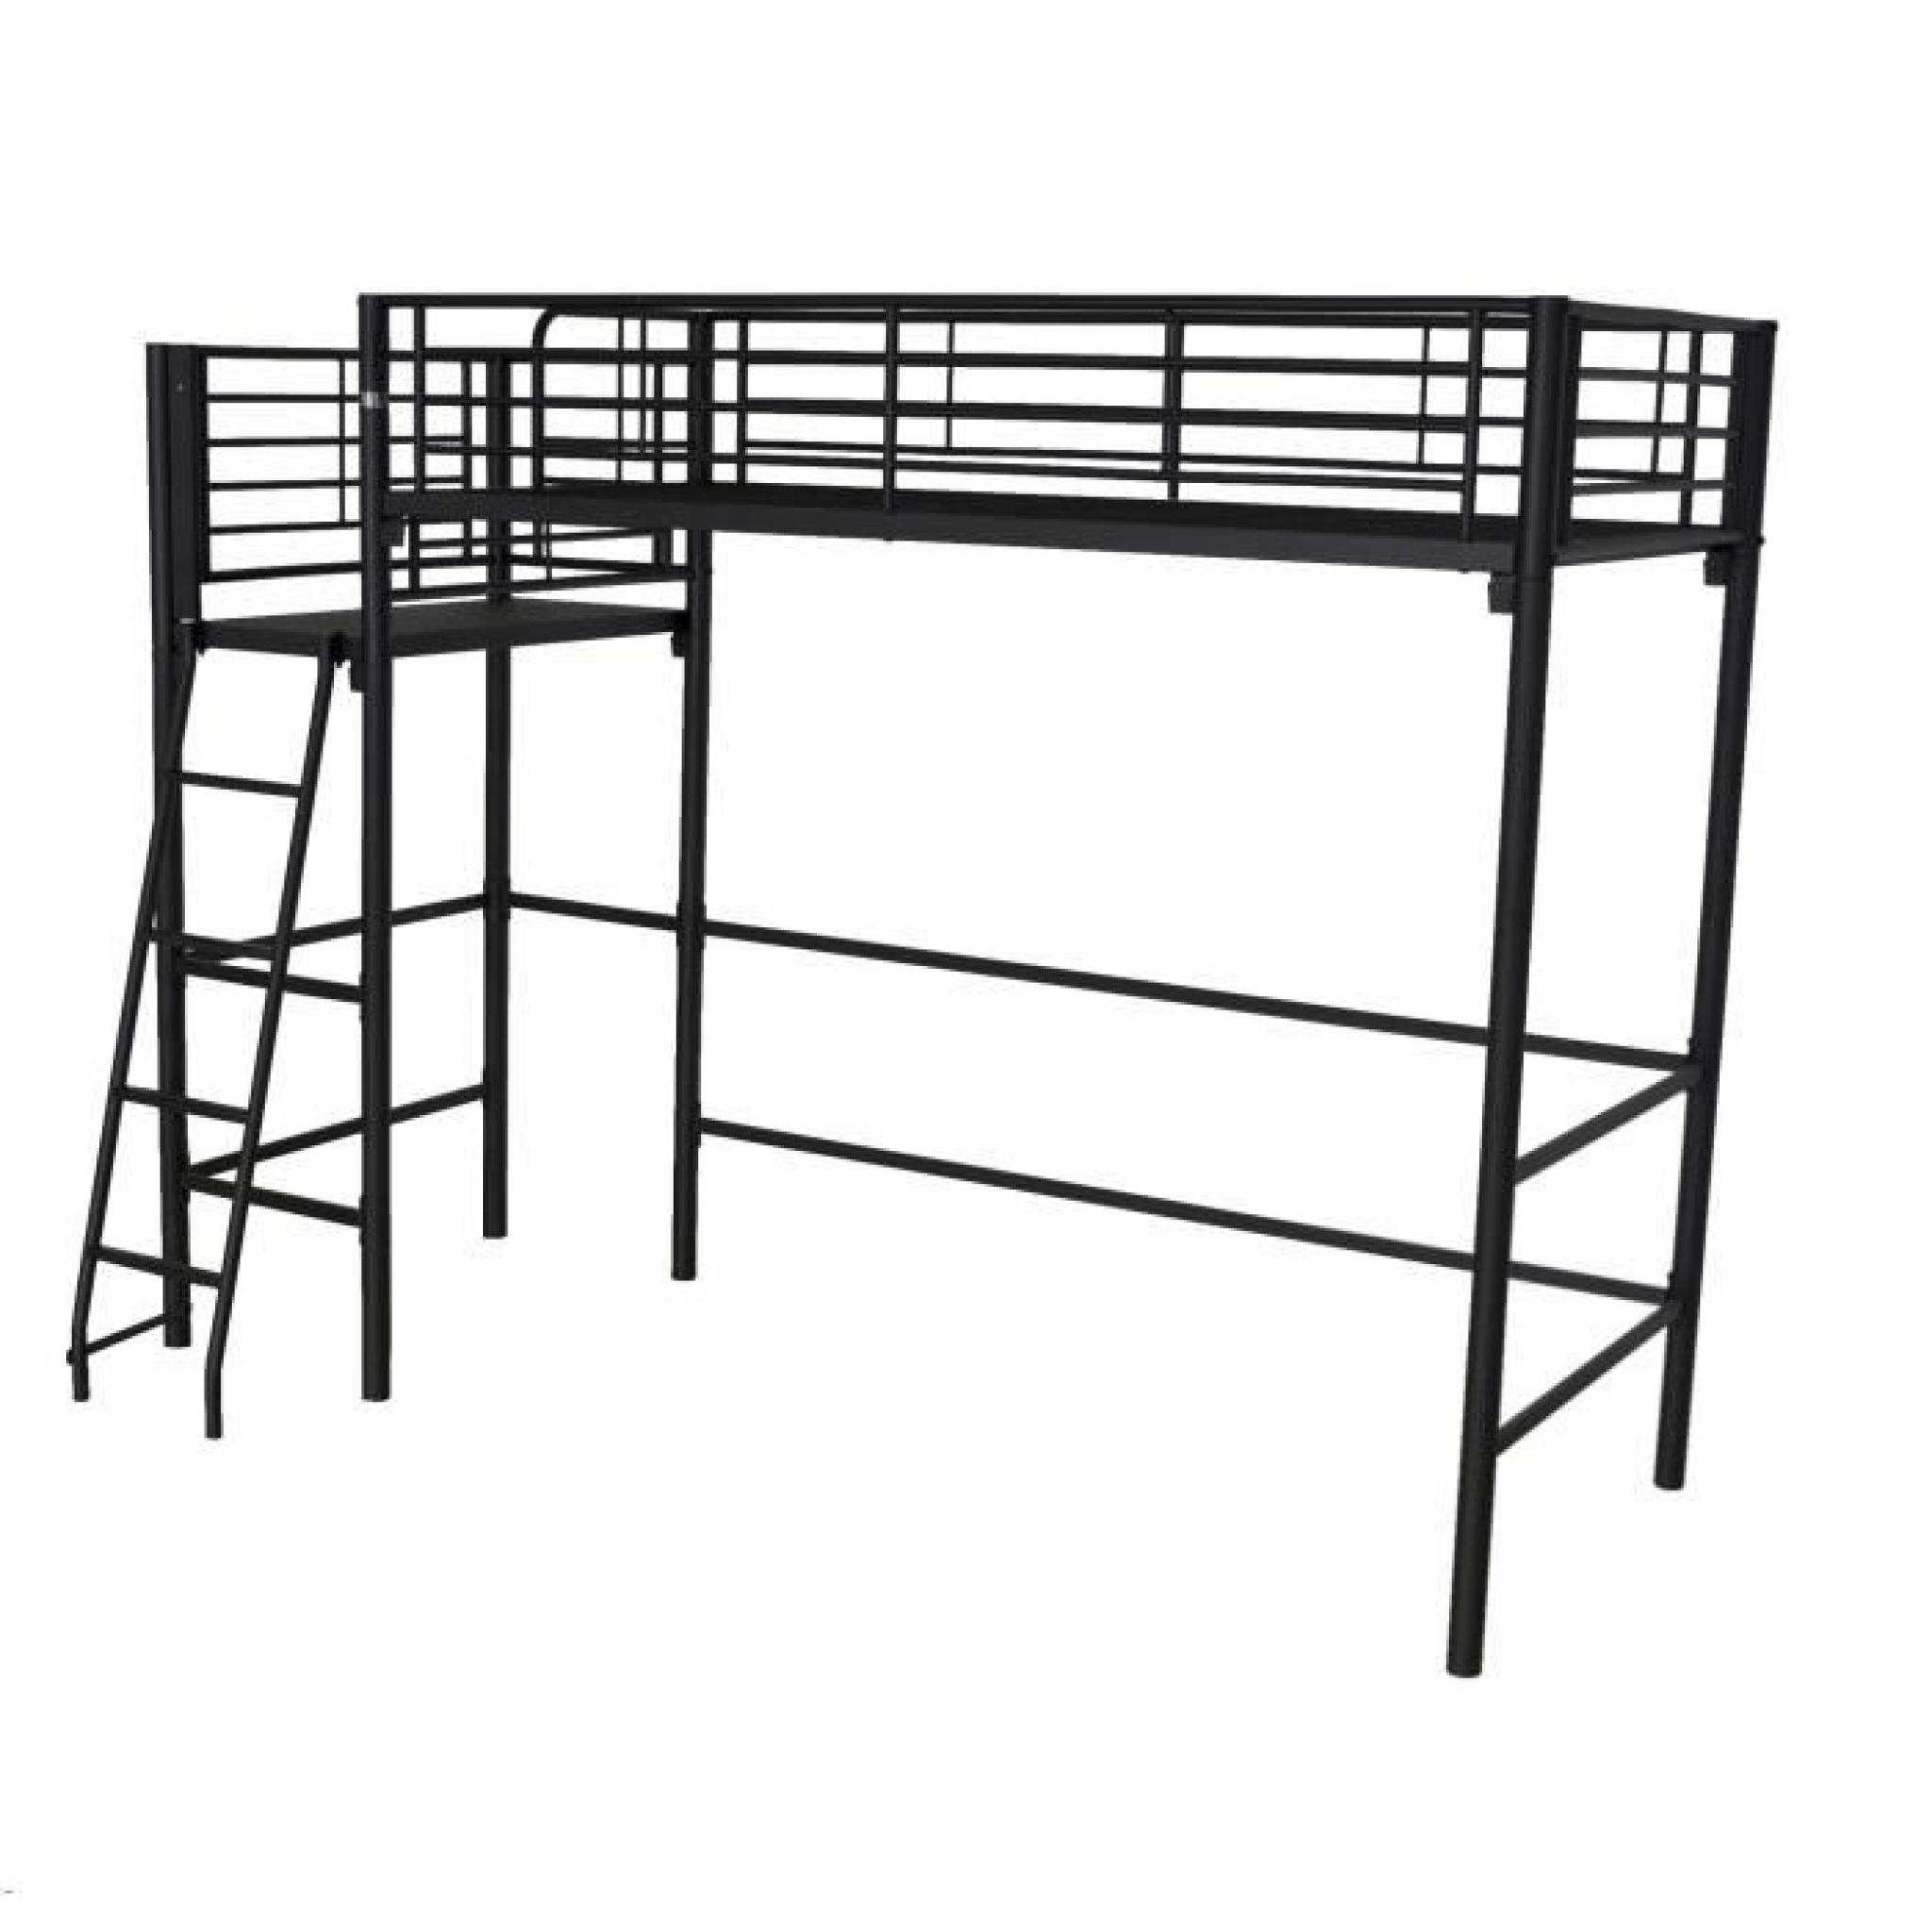 alexy lit mezzanine avec plate forme 90x200cm noir argent achat vente lit mezzanine pas cher. Black Bedroom Furniture Sets. Home Design Ideas